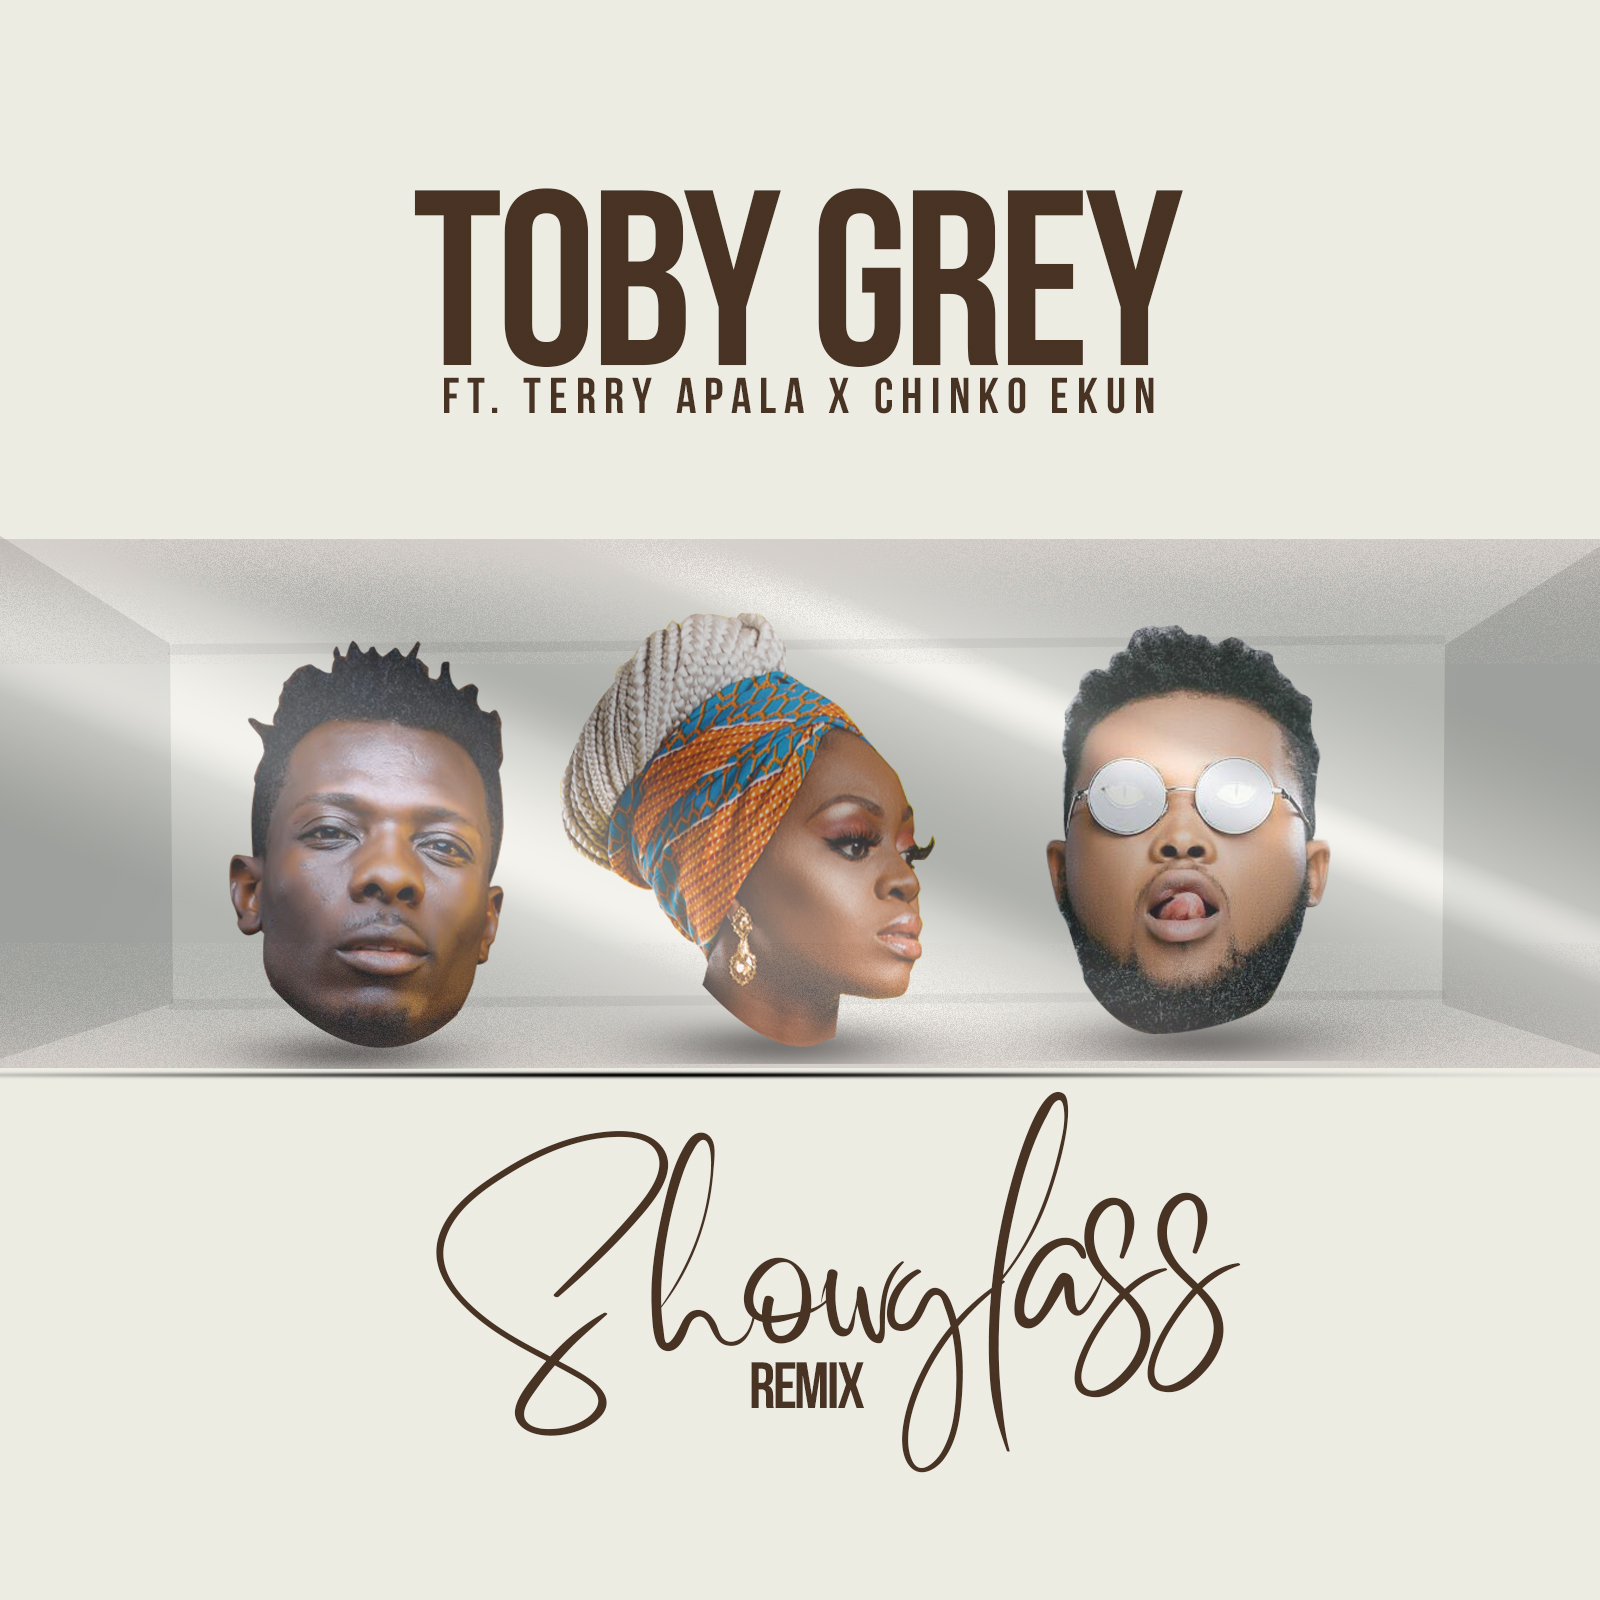 Toby Grey ft. Terry Apala X Chinko Ekun - Show Glass